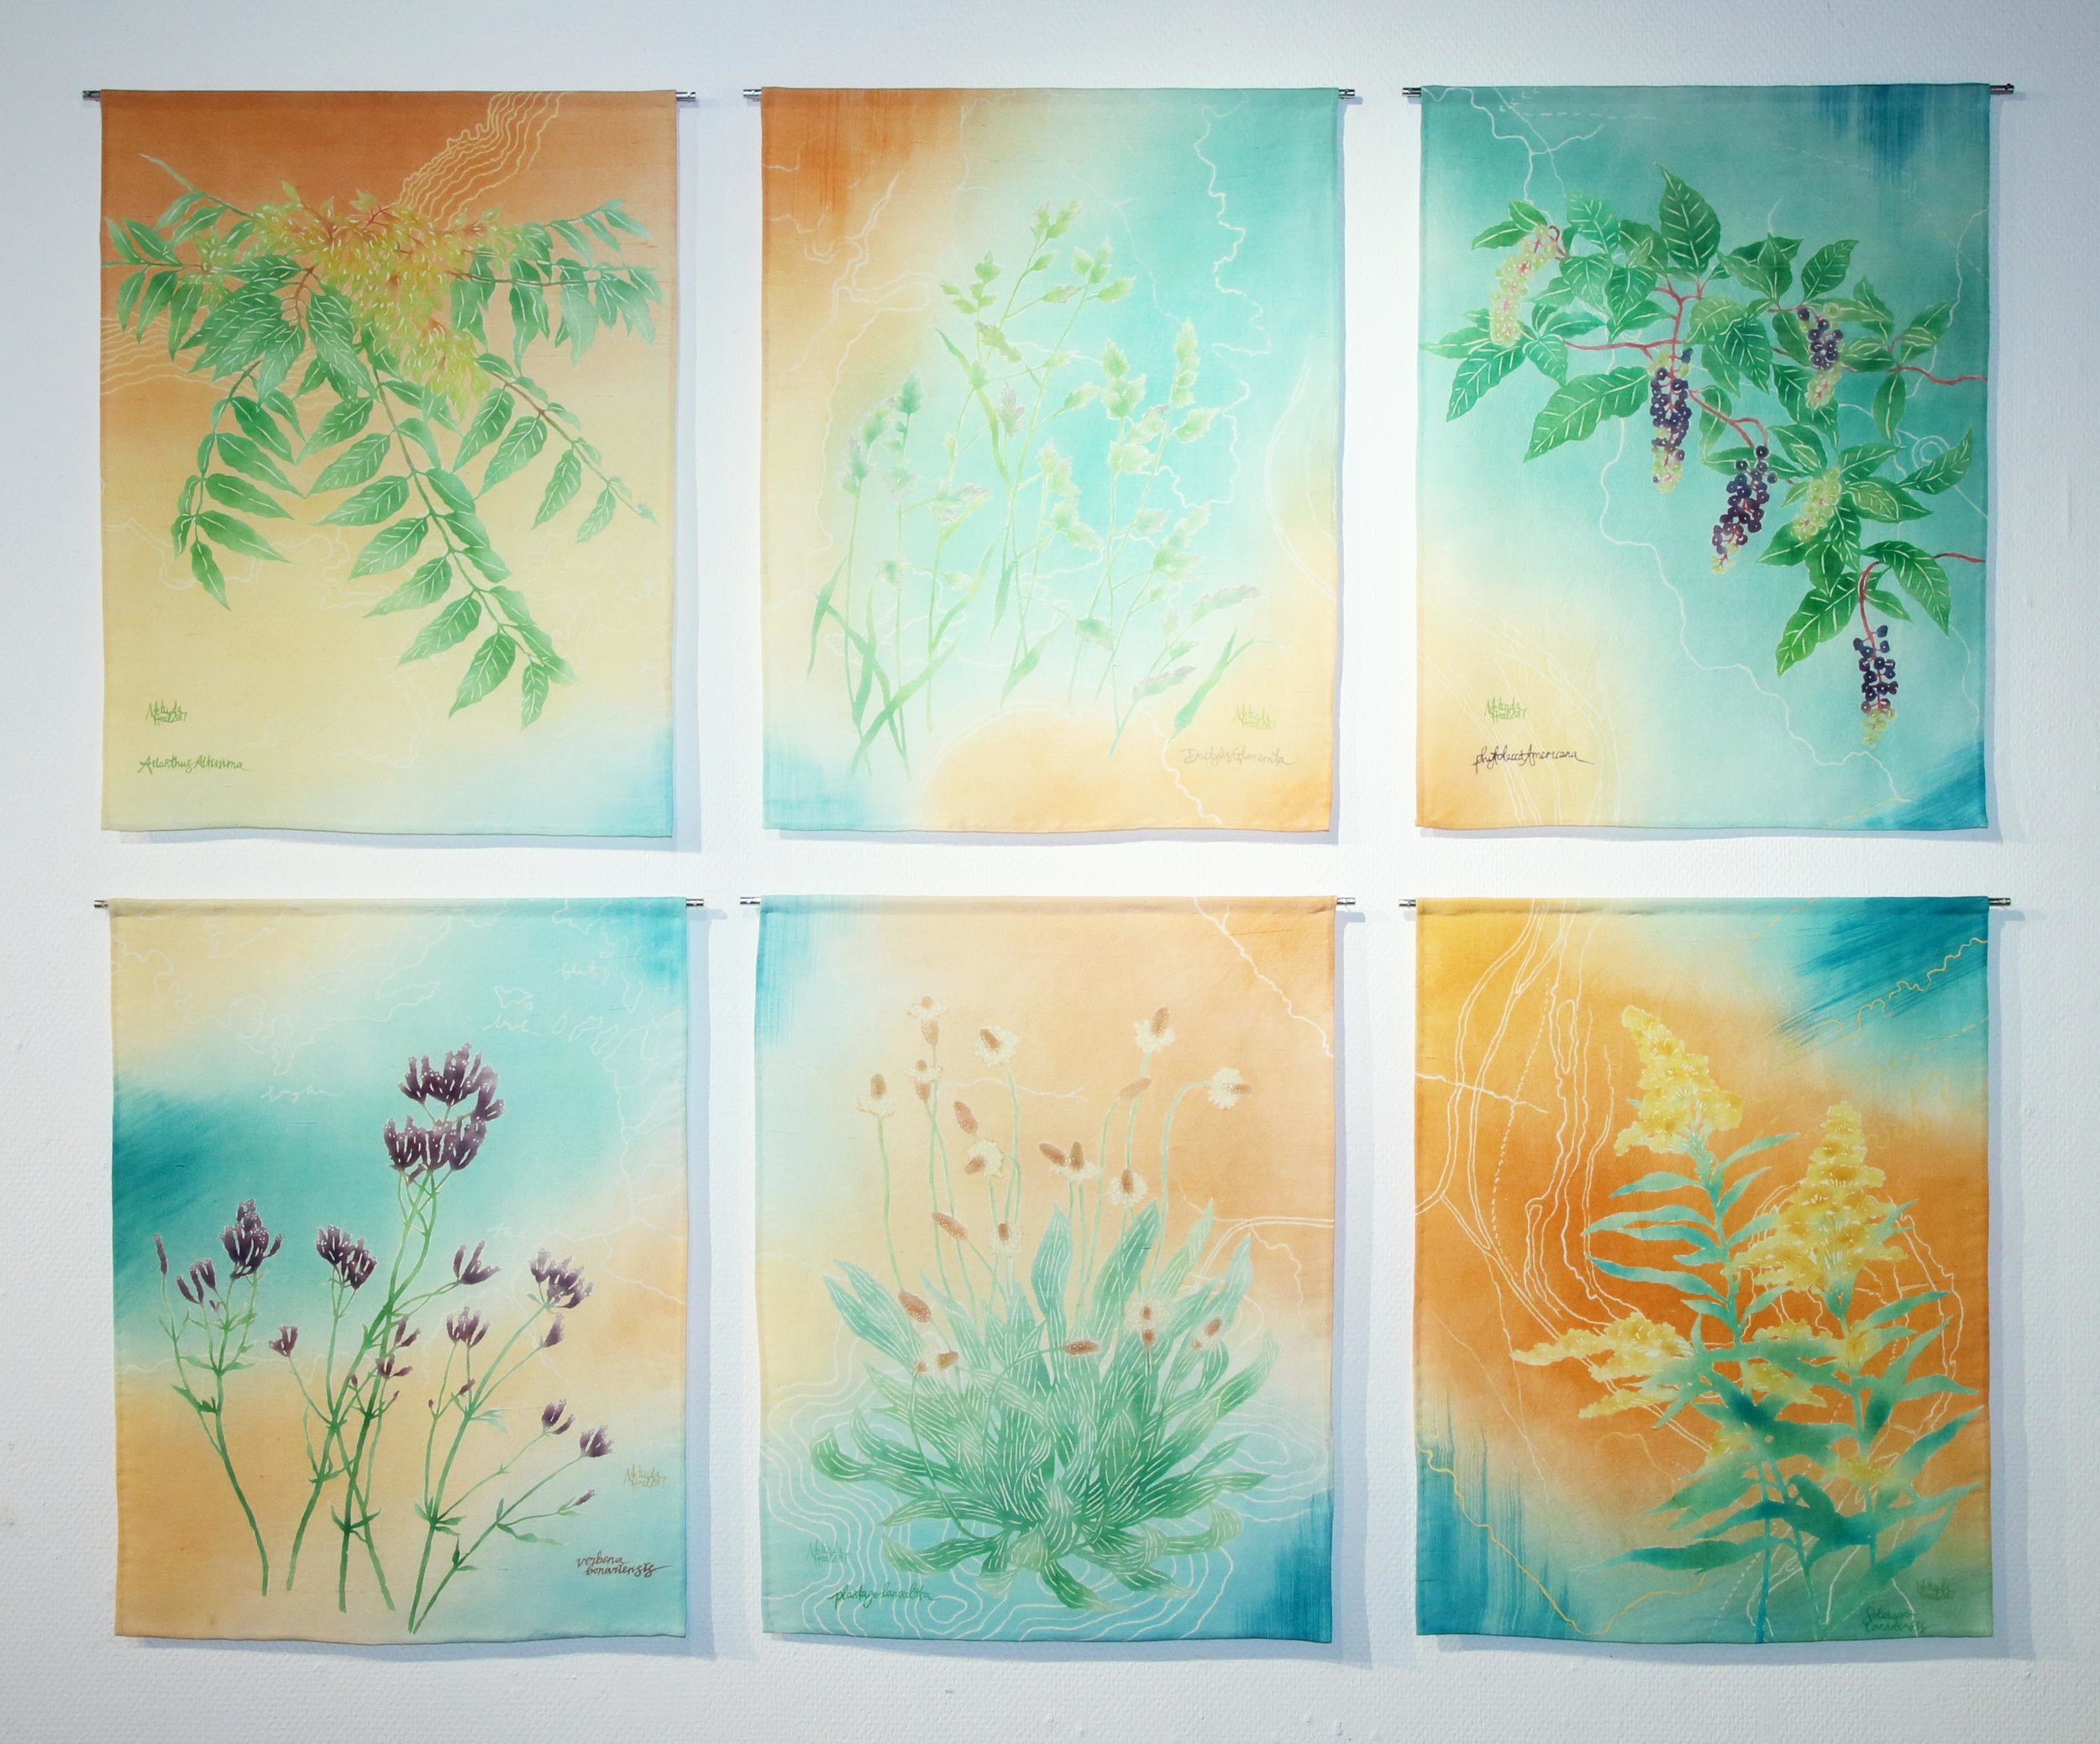 """""""My Weeds are Your Weeds are Our Weeds"""" 2017. Exhibited in New York, Canberra and Kyoto. Depicts weed species shared by all three locations."""